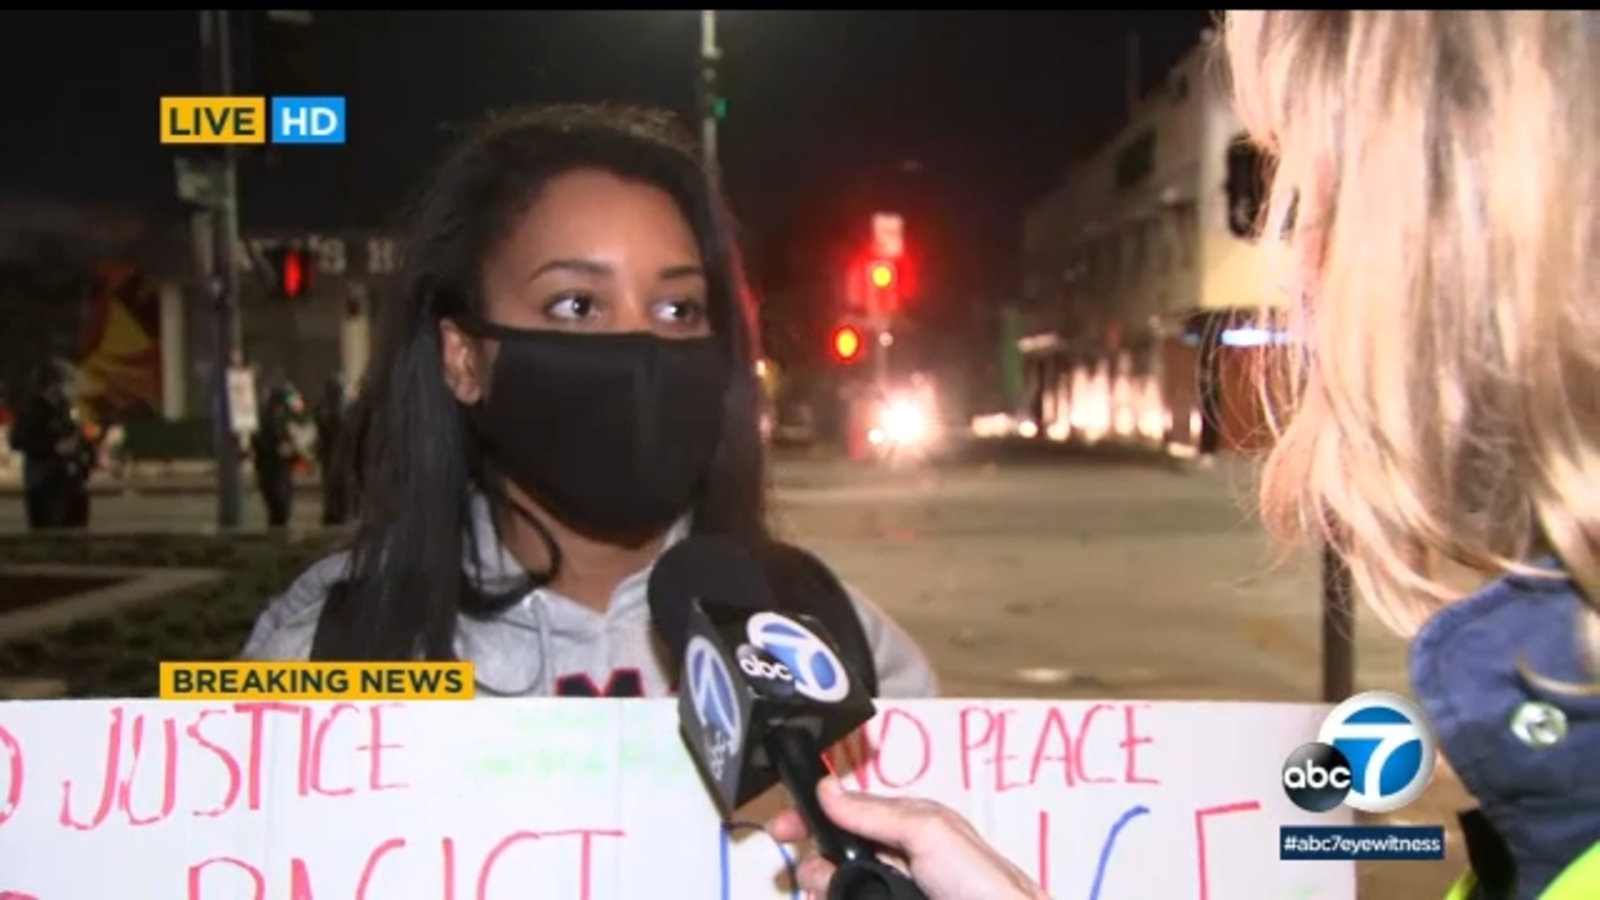 abc7.com: Los Angeles protester compares violence, riots in LA to racial inequality in society